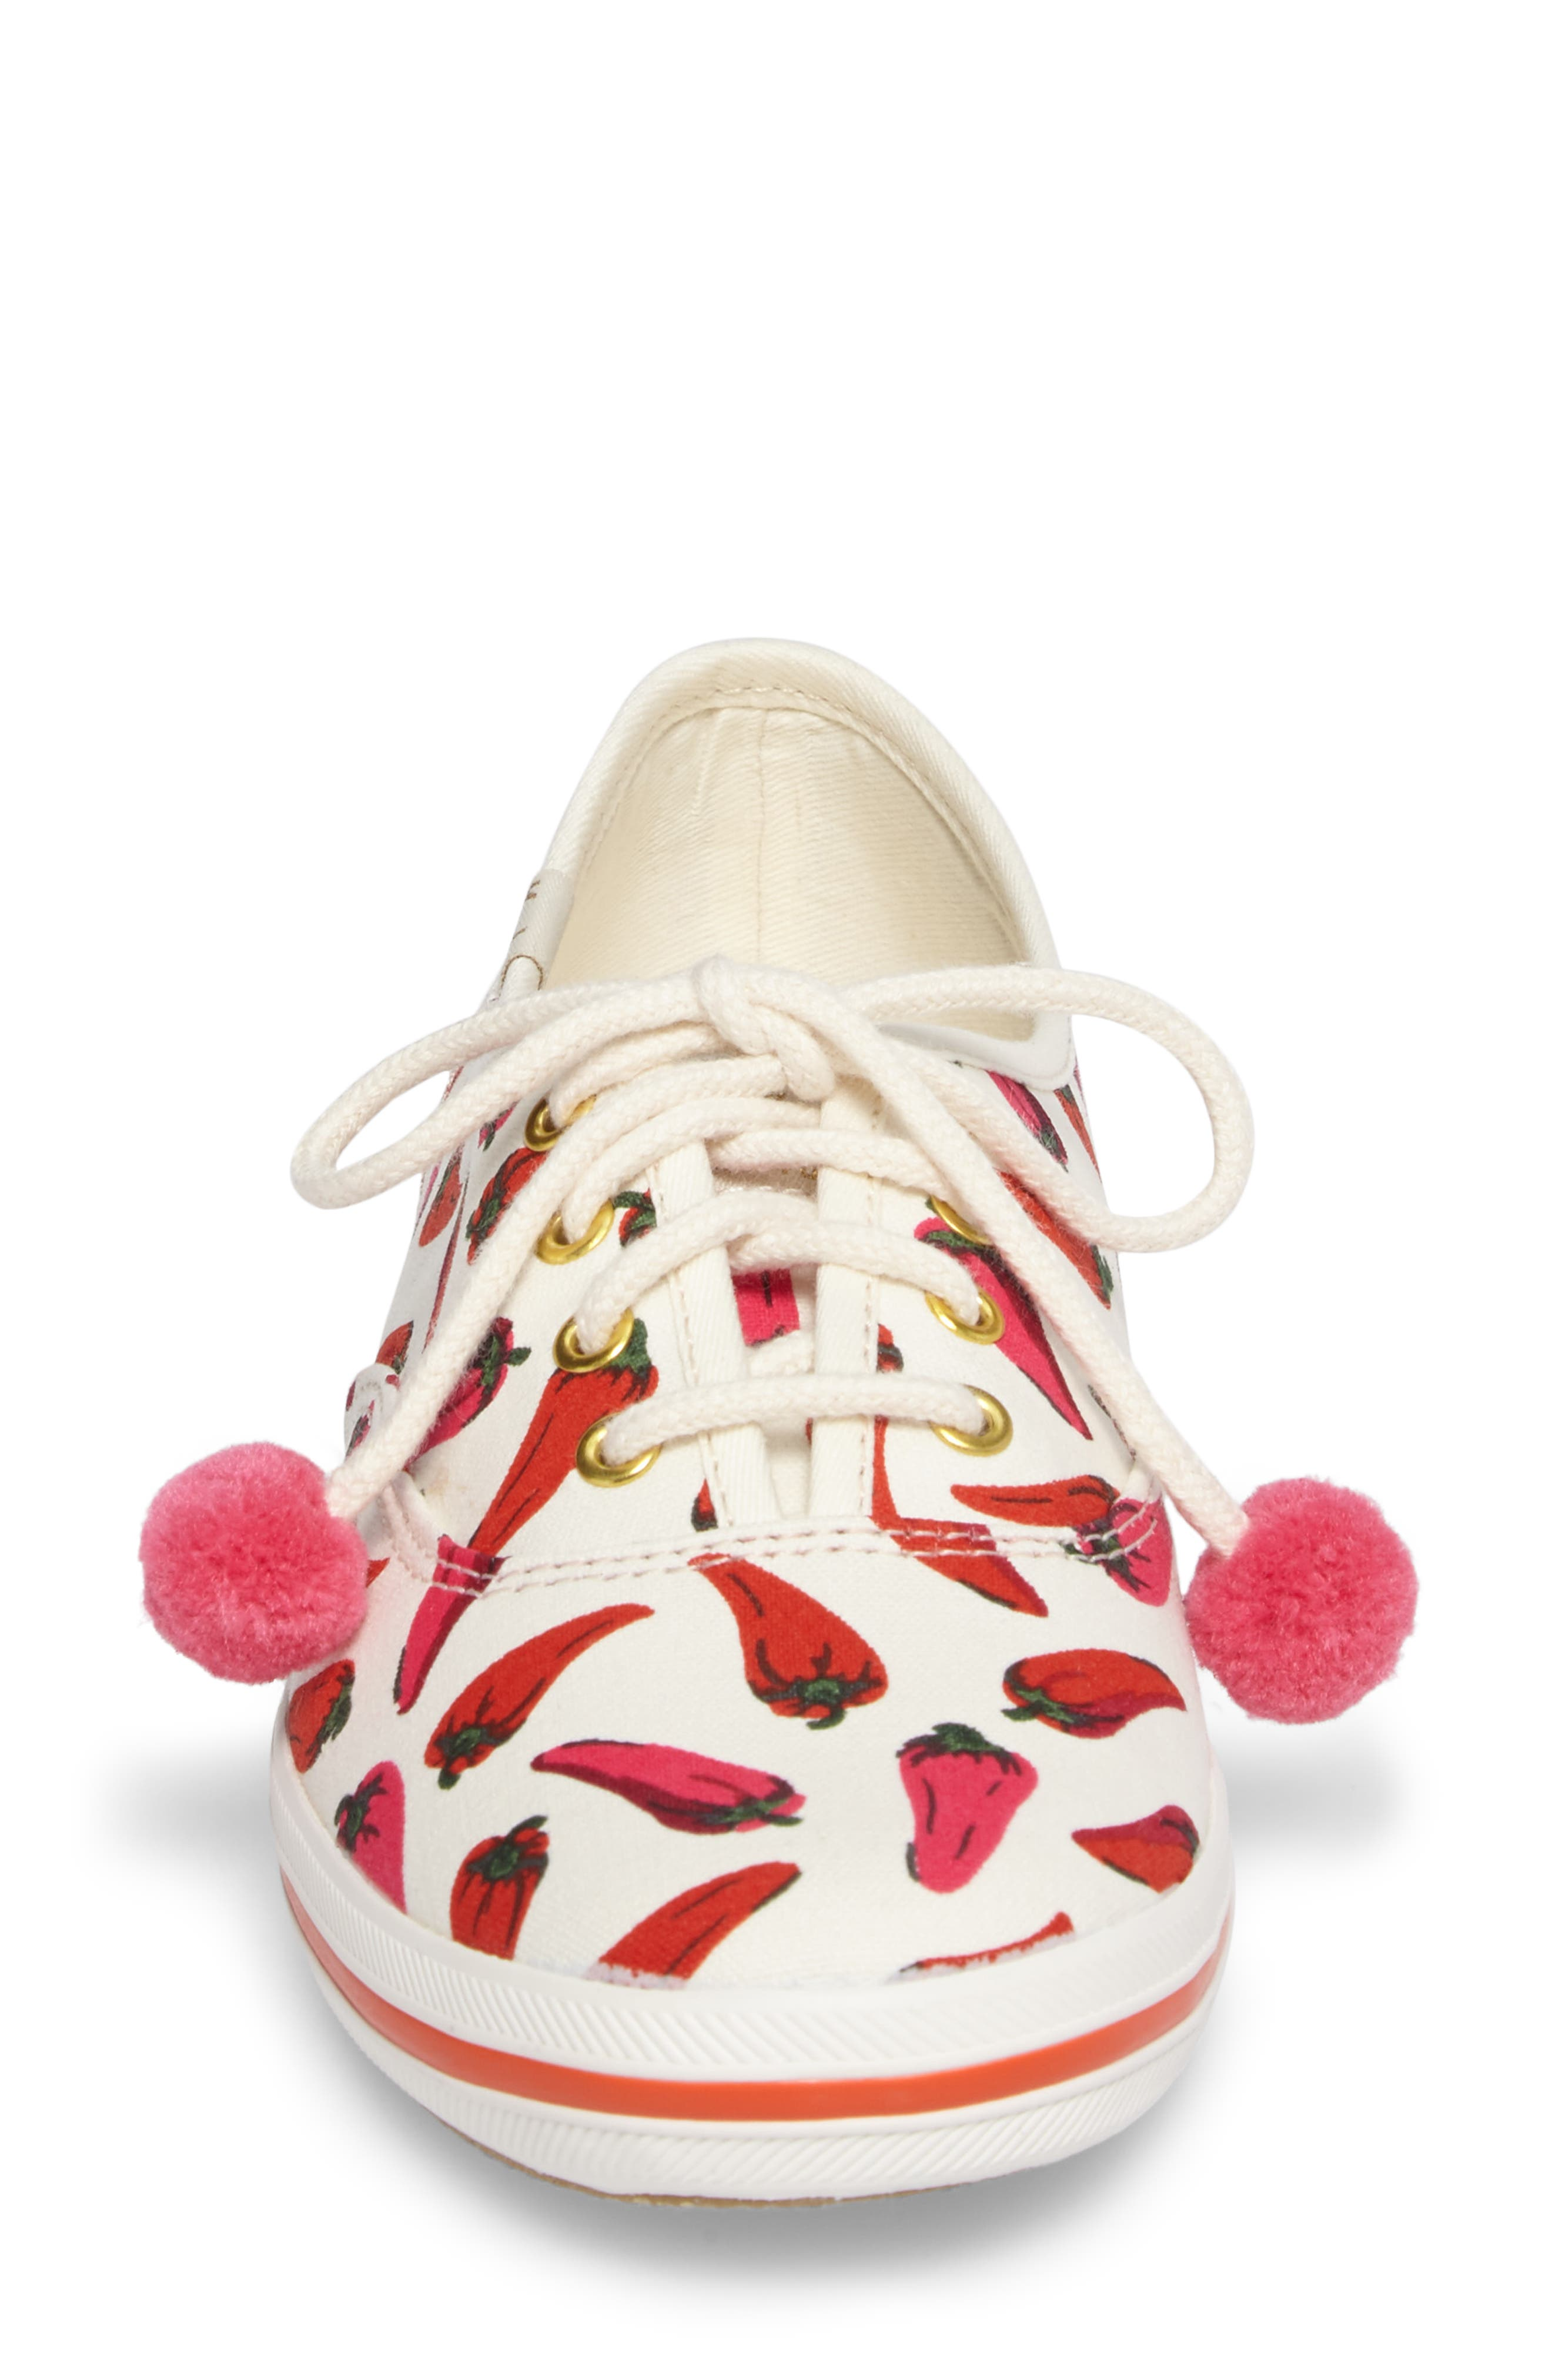 Keds<sup>®</sup> x kate spade new york champion sneaker,                             Alternate thumbnail 16, color,